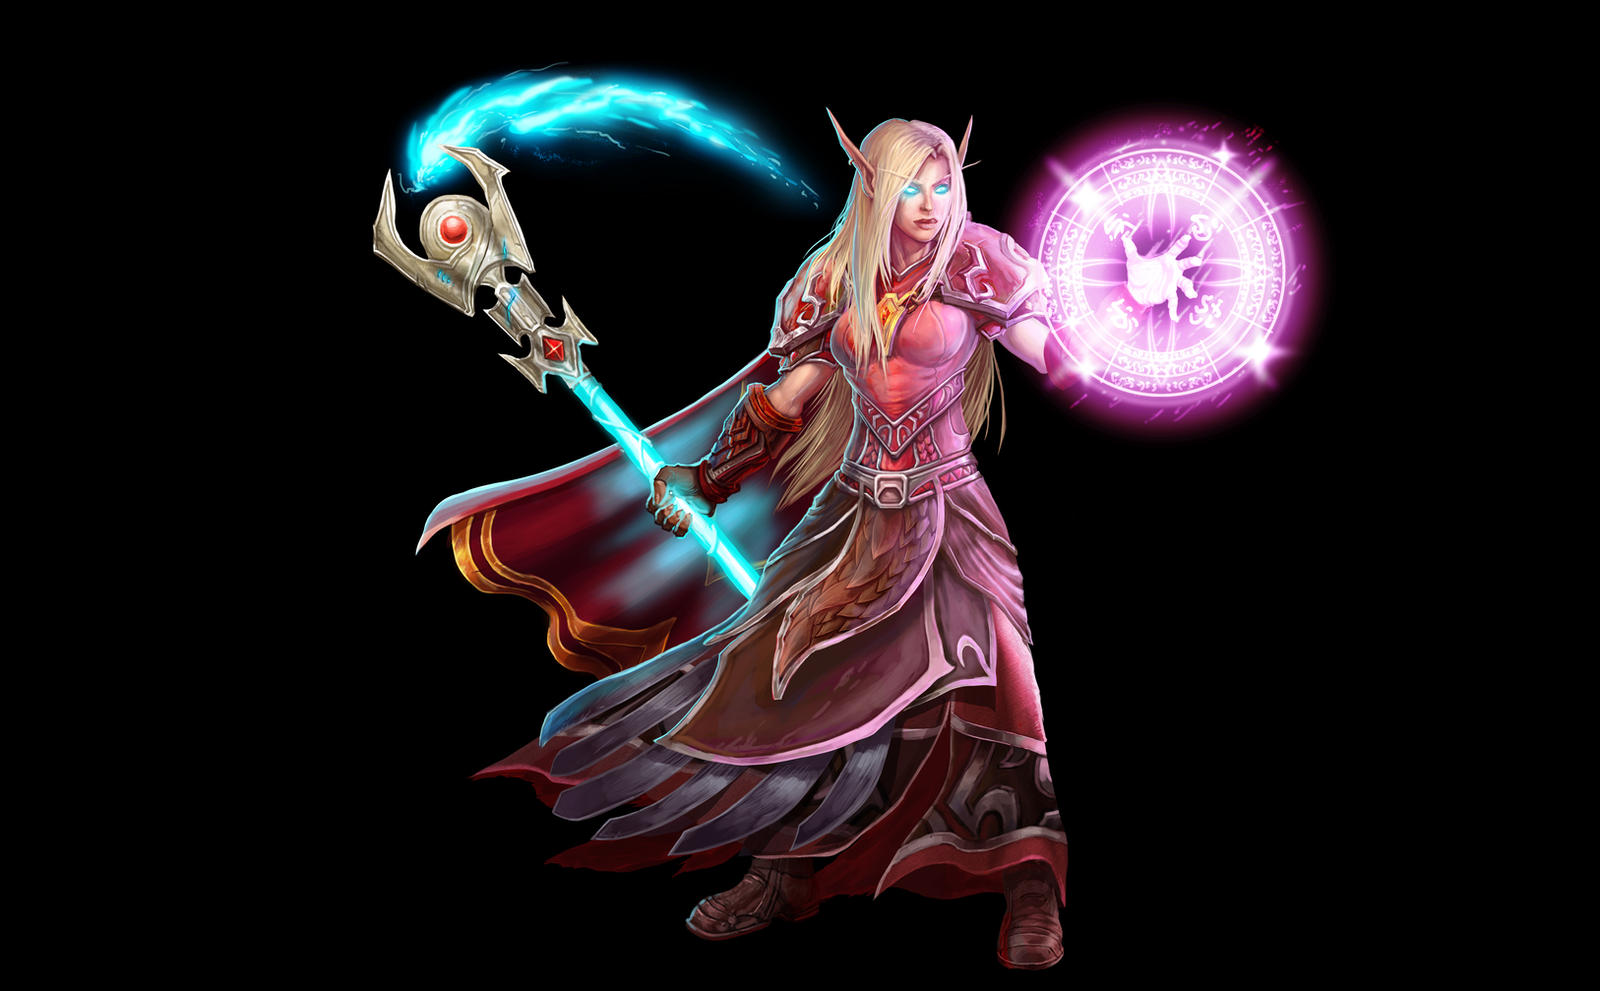 Blood elf female mages pom animation erotic cute pussy